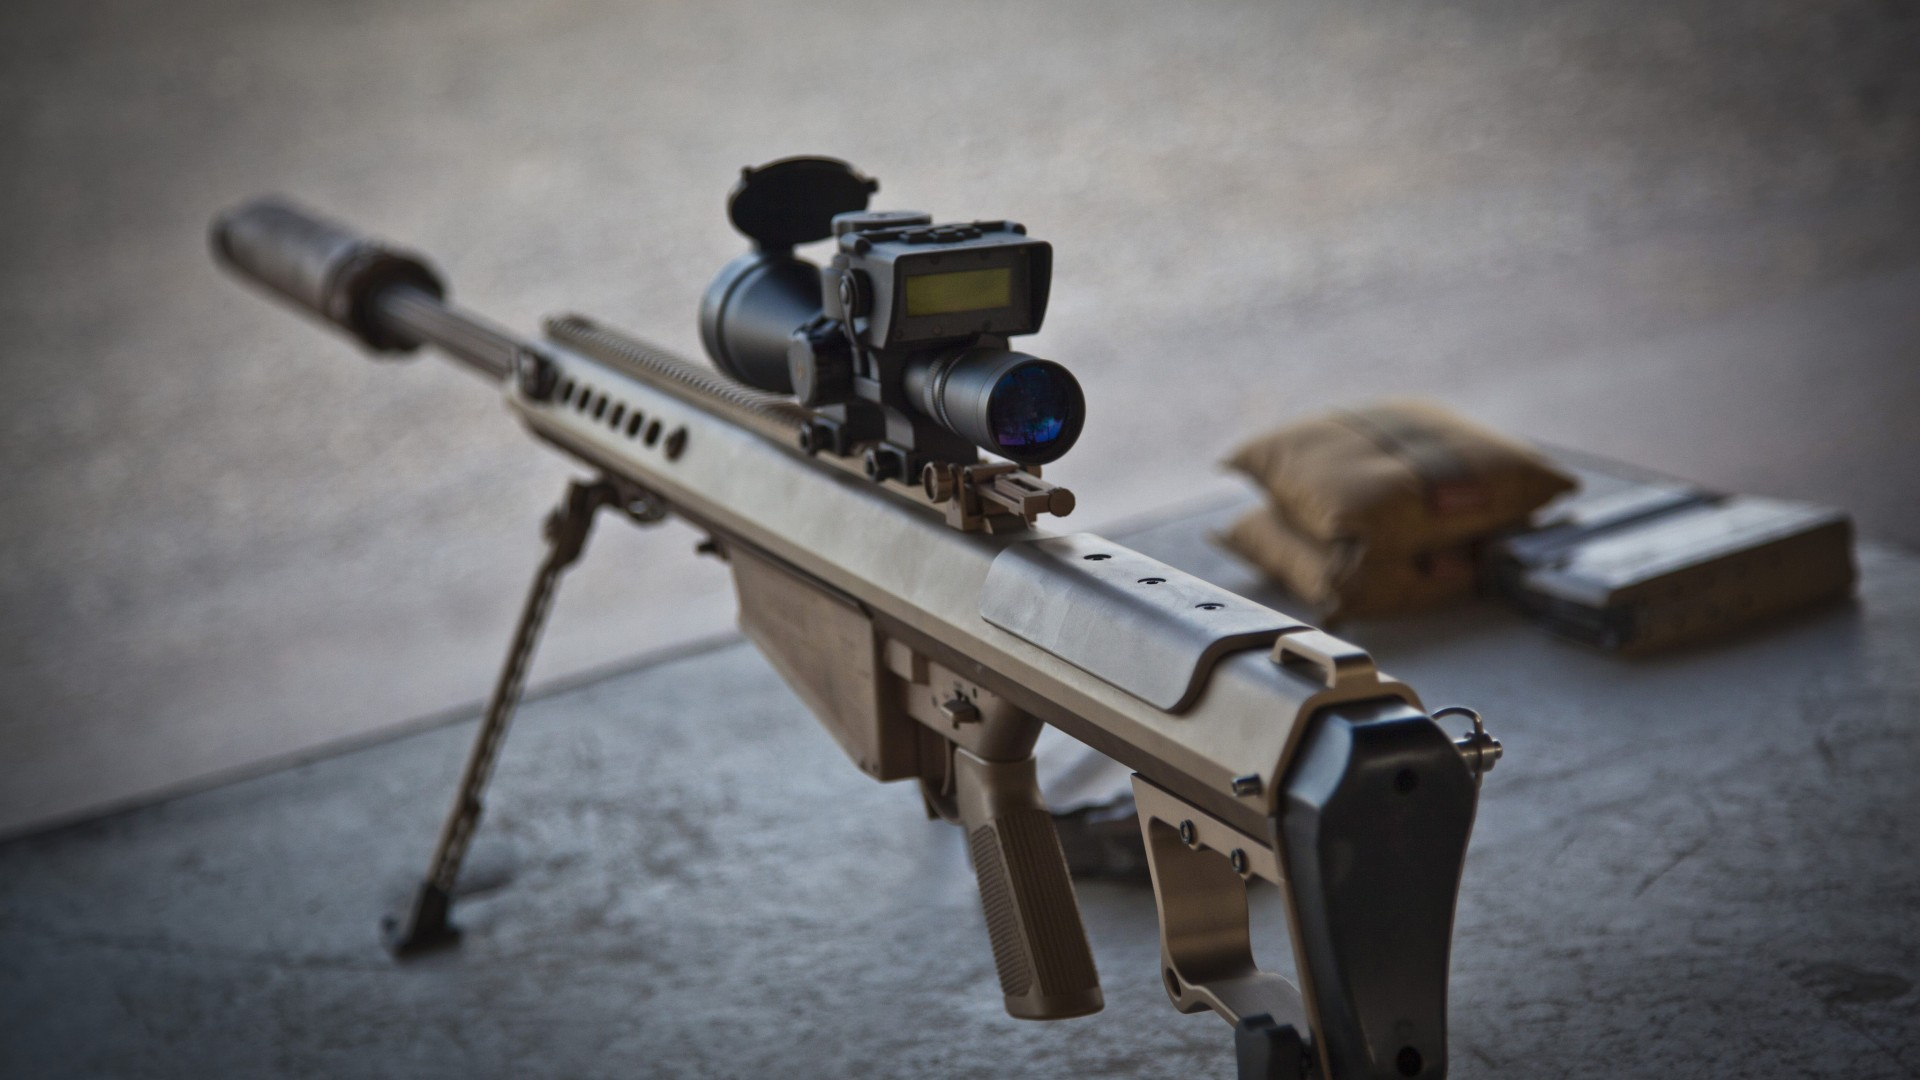 m107 sniper rifle - photo #14